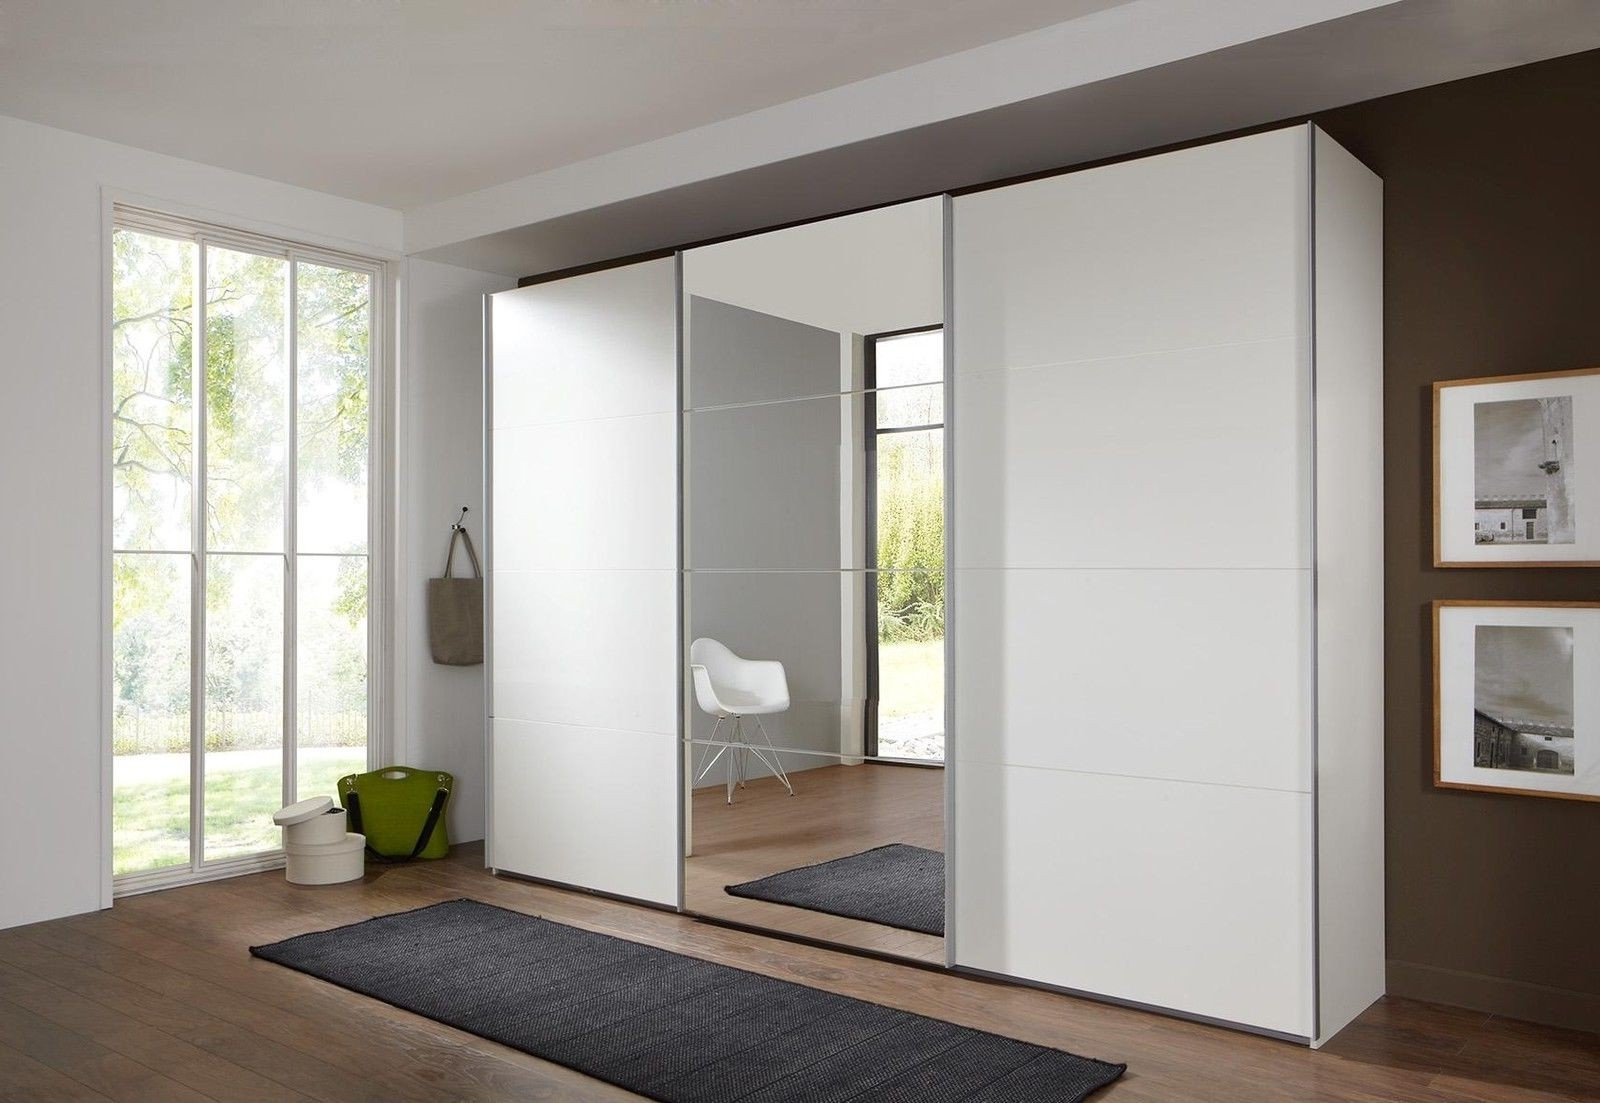 Most Recent White 3 Door Wardrobe With Drawers And Mirror Argos Doors You Will Regarding 3 Door Mirrored Wardrobes (View 10 of 15)